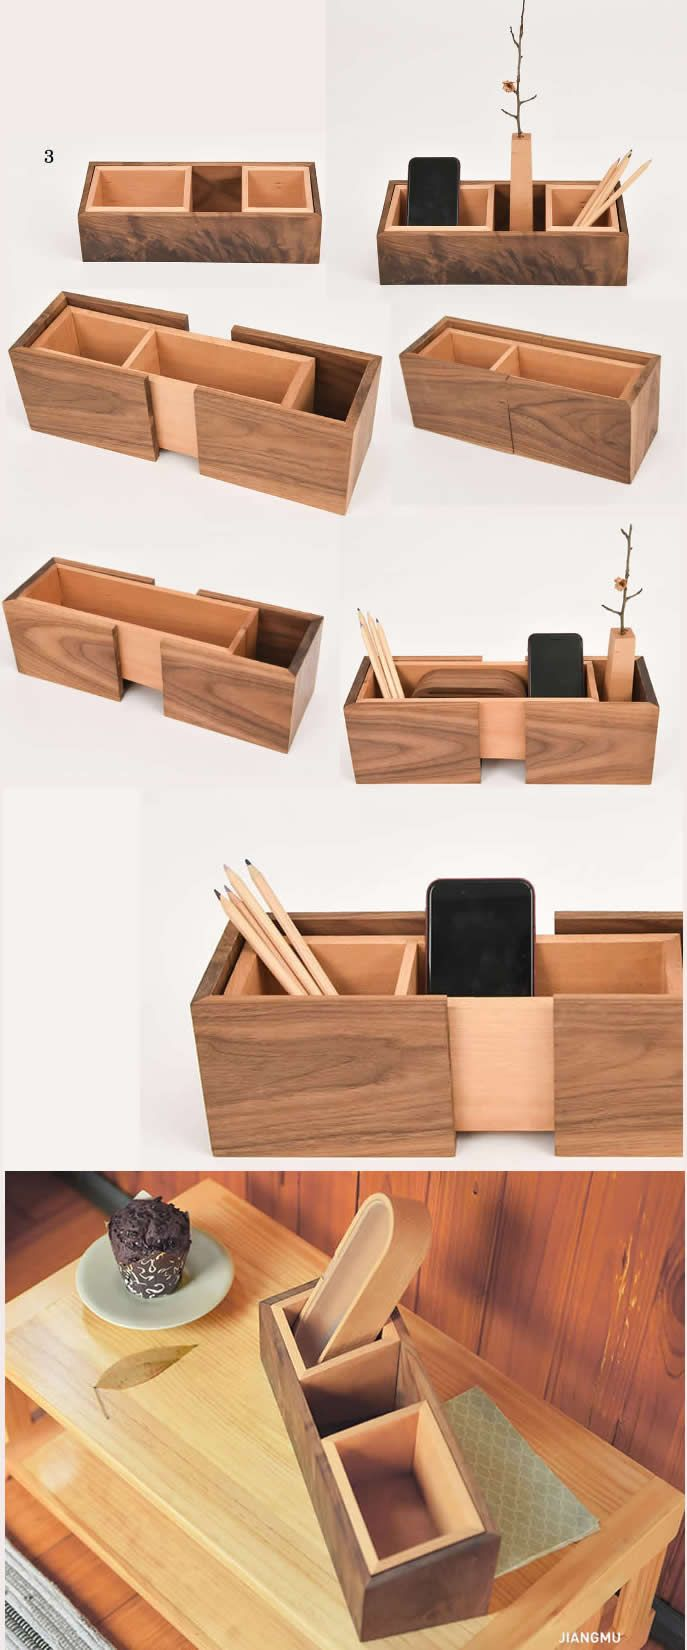 Creative Diy Desk Organizer Ideas To Make Your Desk Cute Bamboo